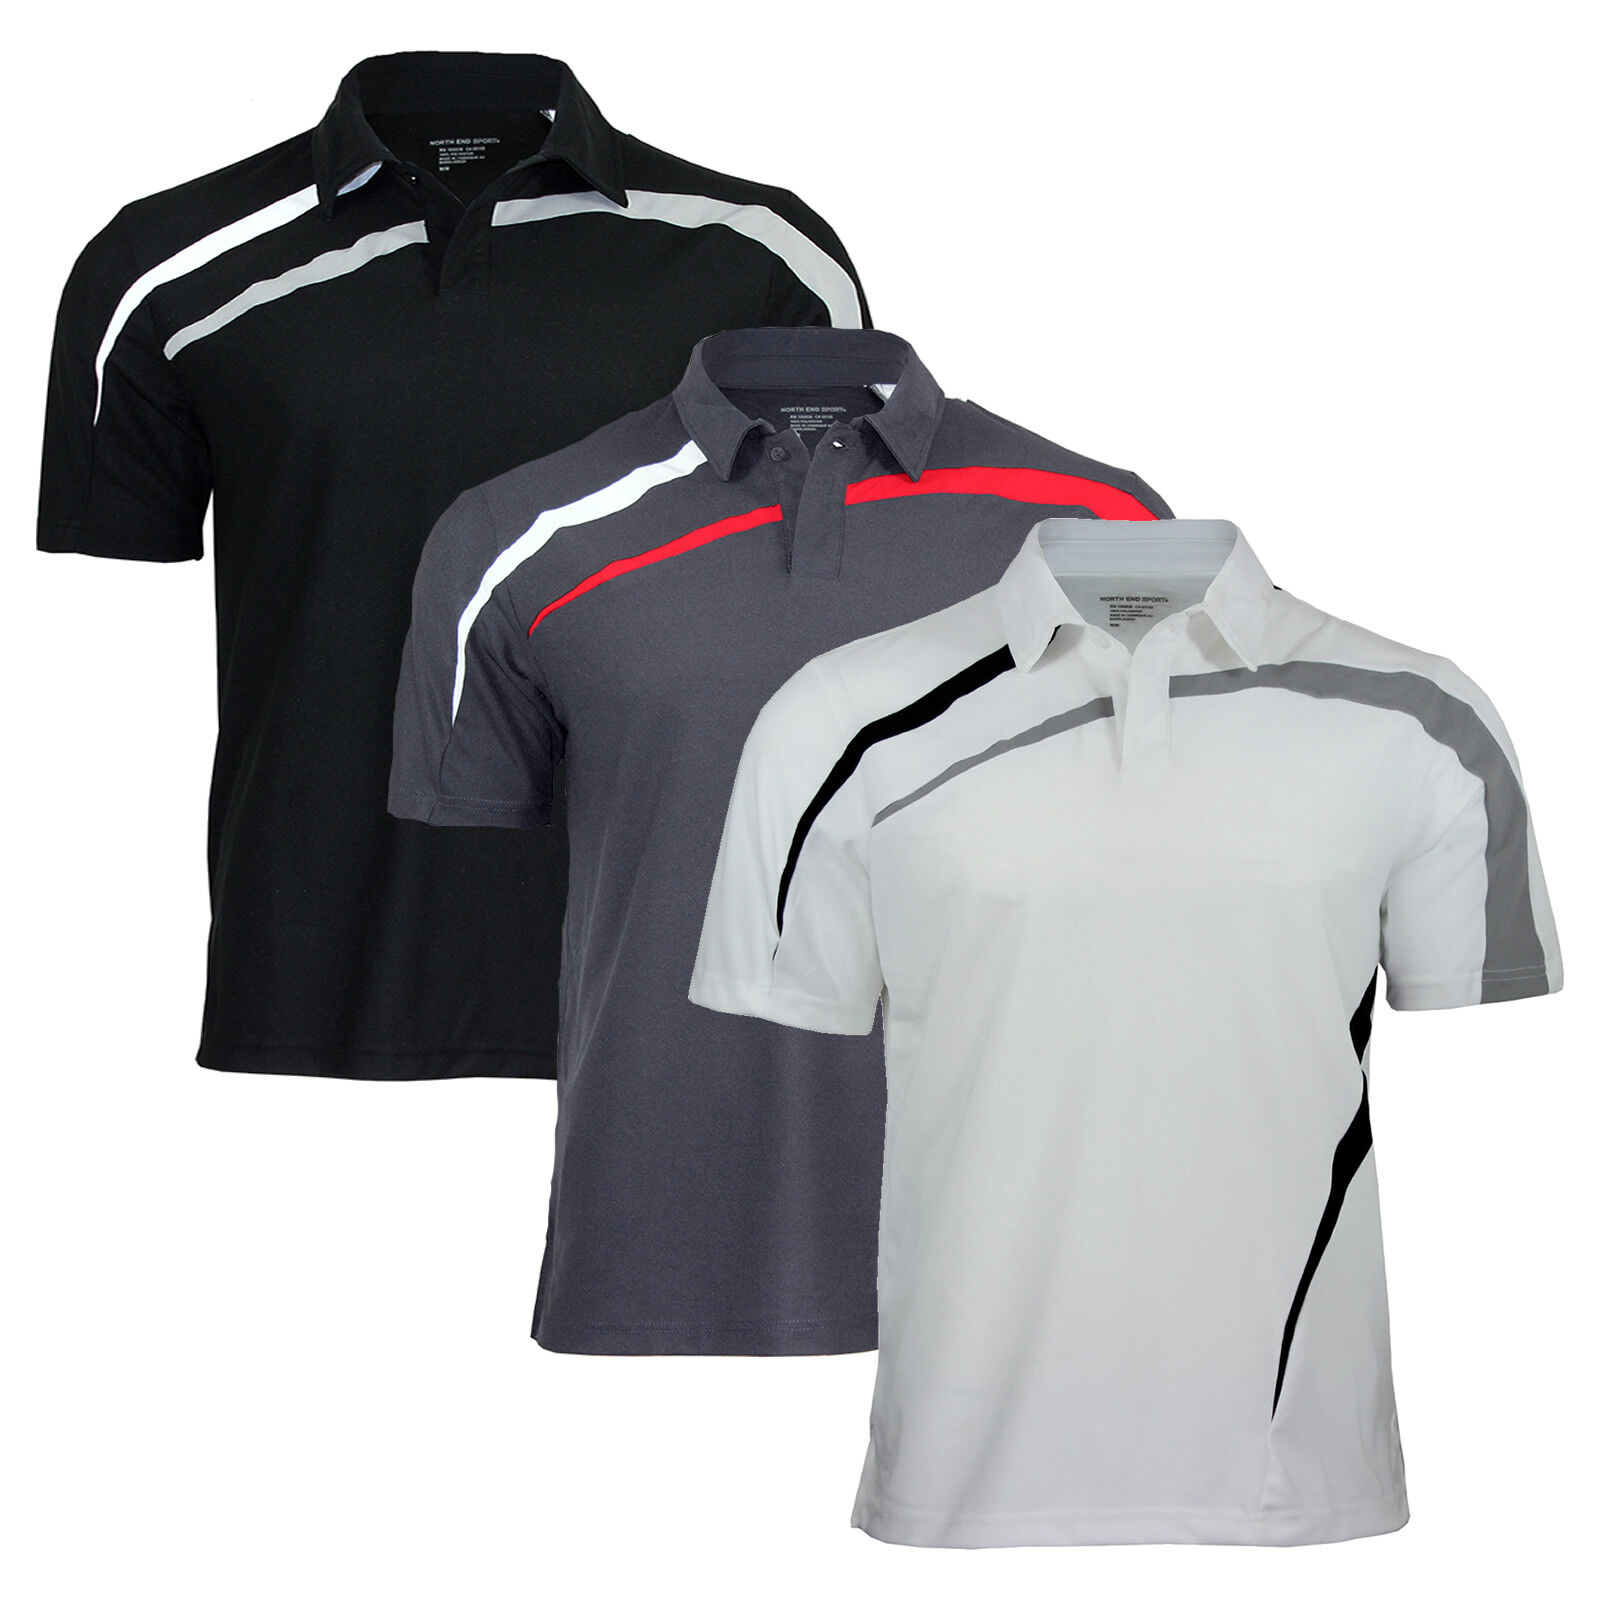 Men's North End Polo Shirts for Golf, Tennis, Gym, Cycling and Sports Activity